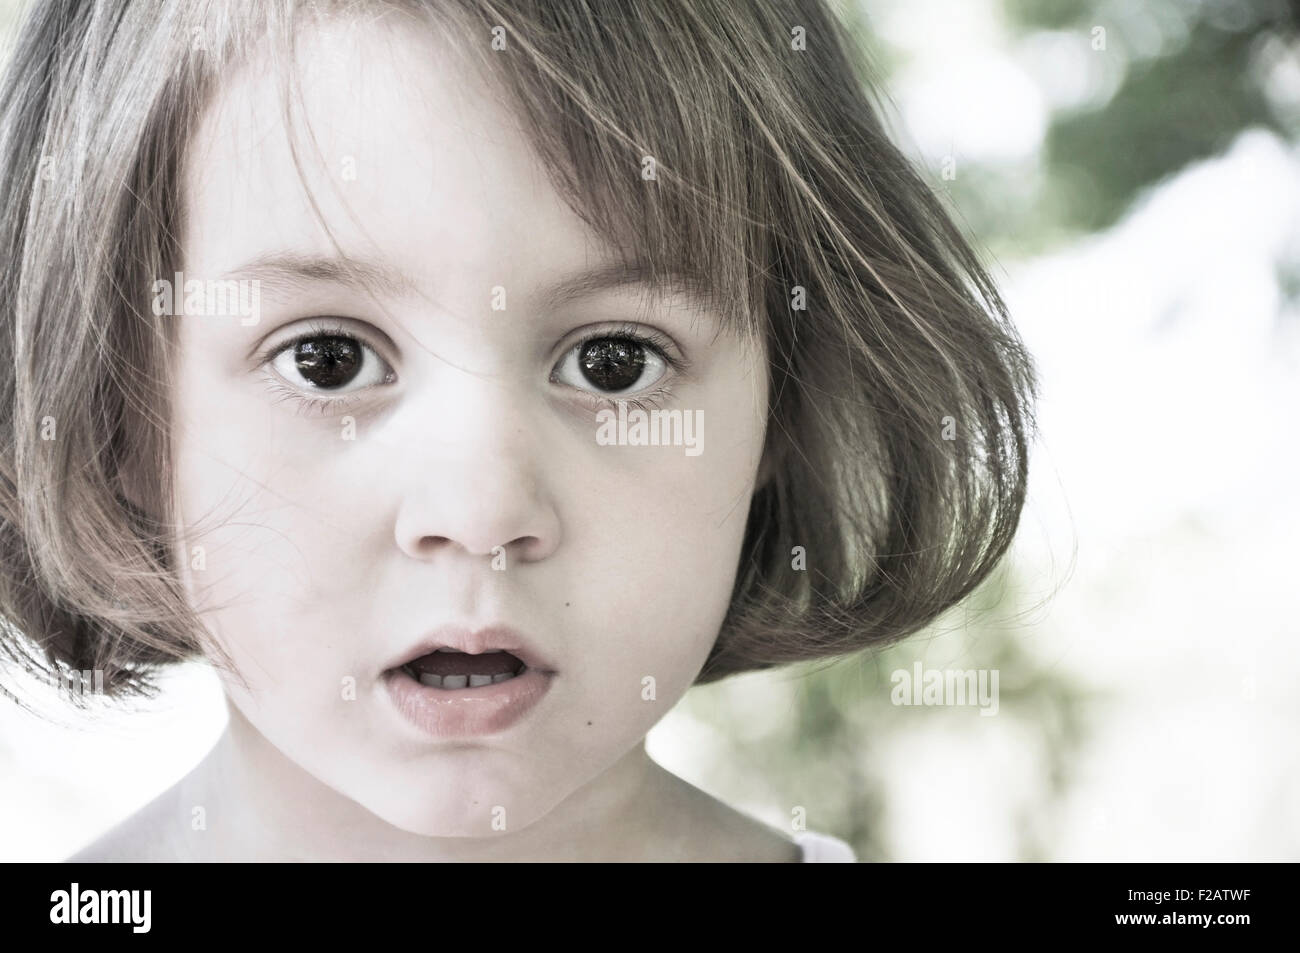 Portrait of girl in awe - Stock Image